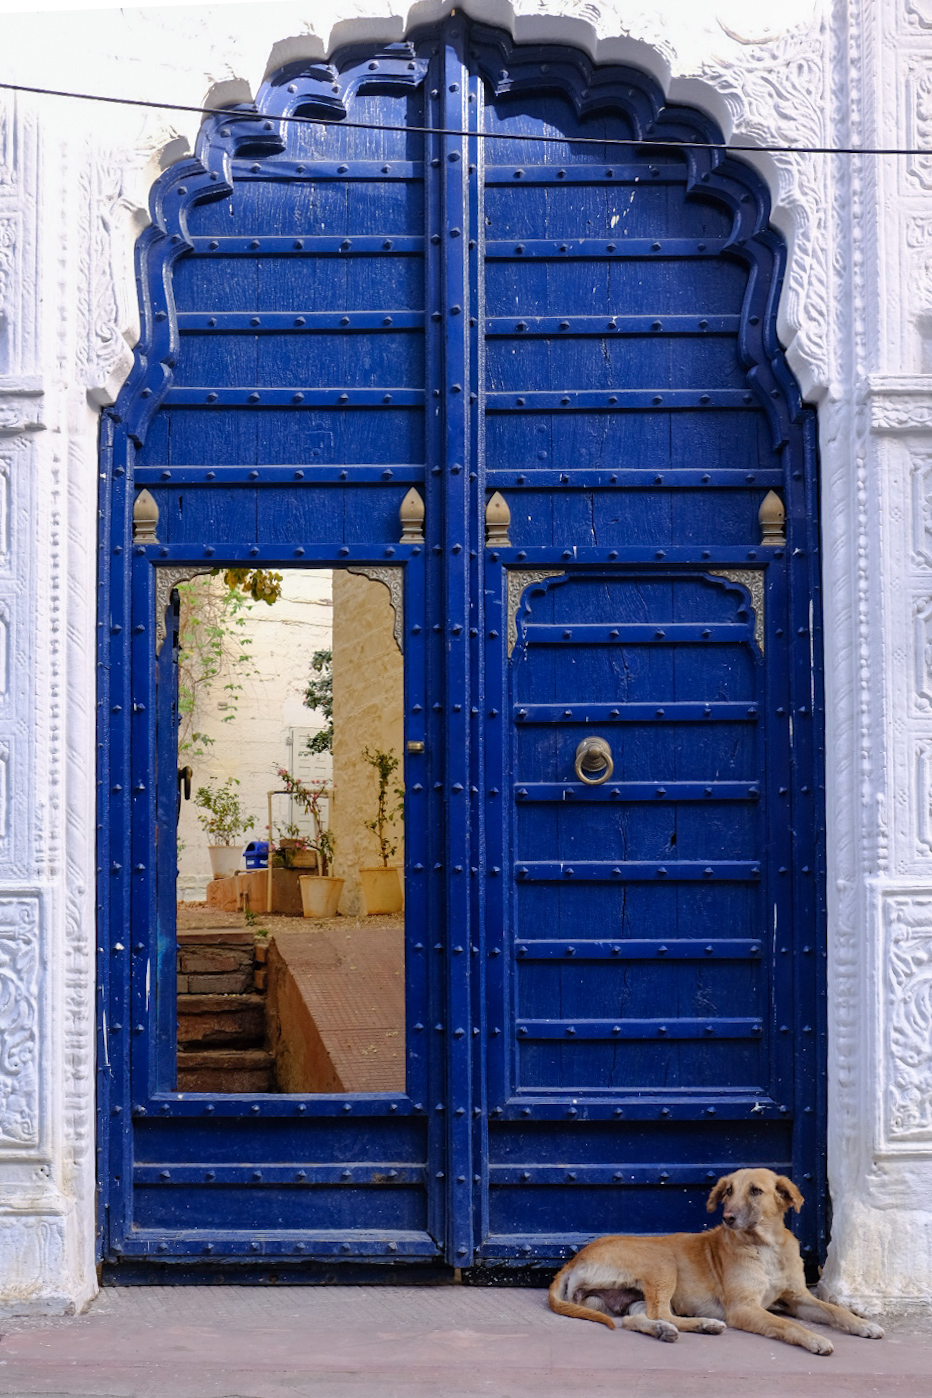 Colorful doors spotted while exploring the Jodhpur Streets